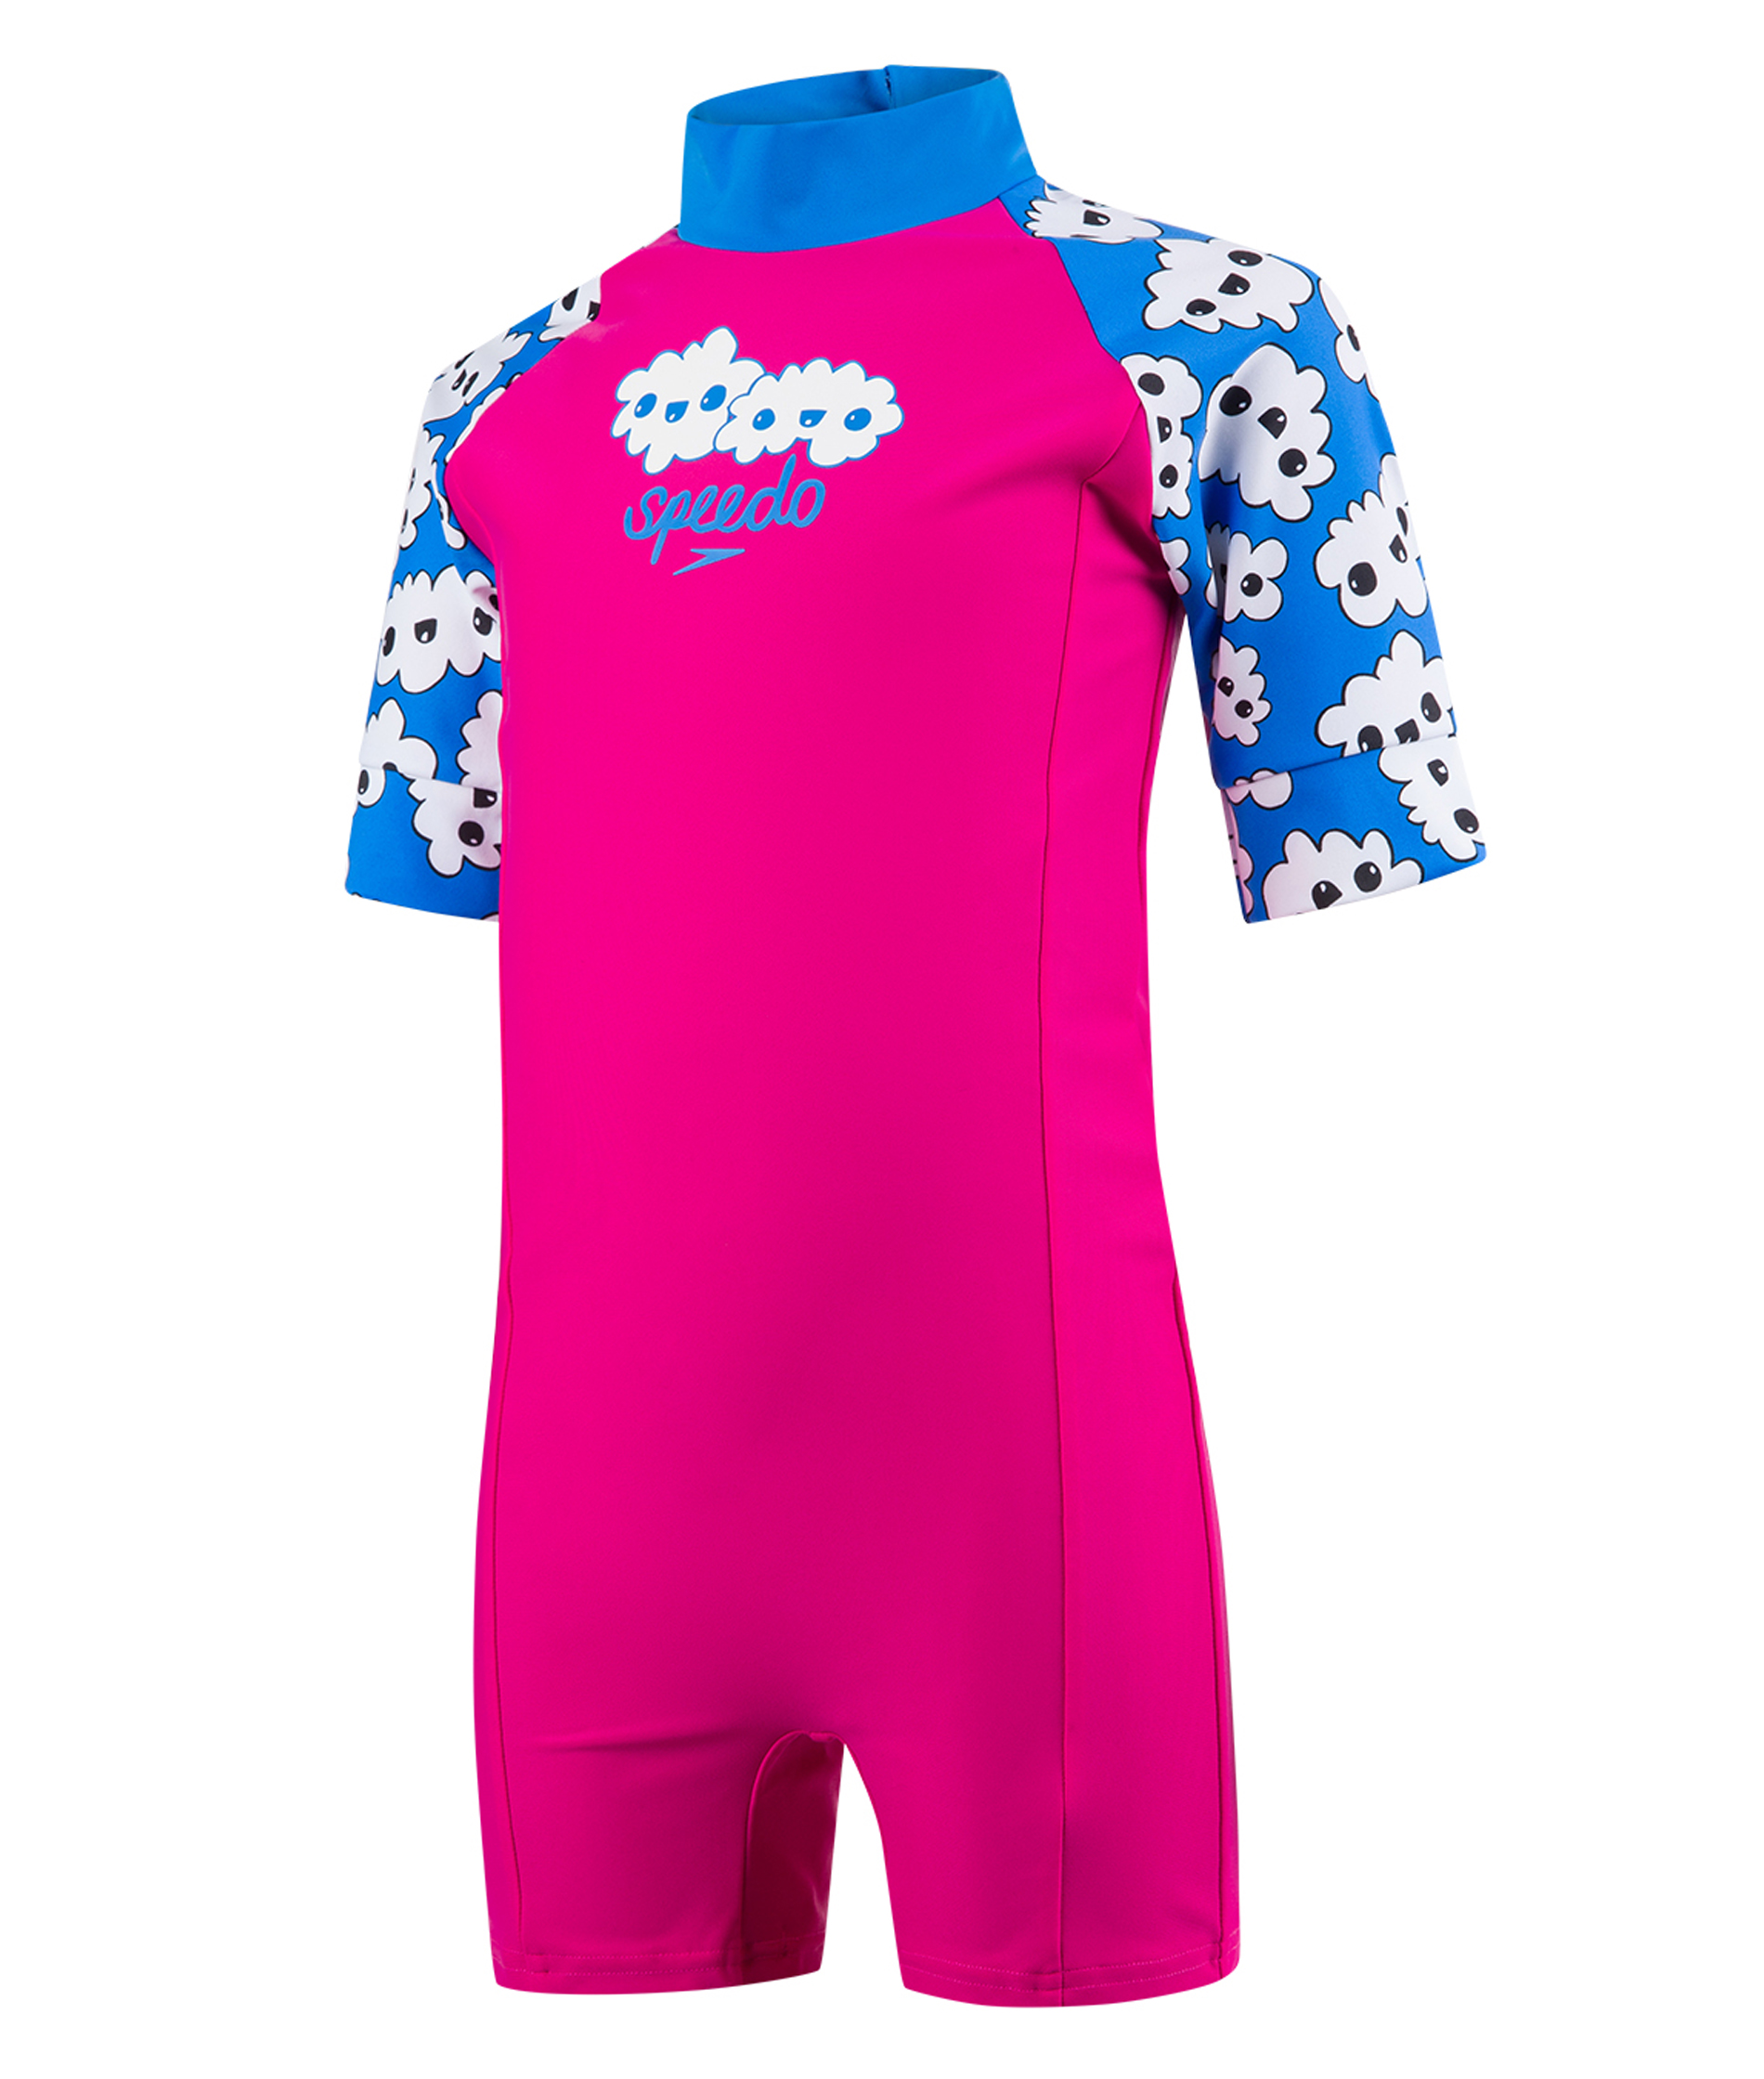 Speedo Toddler Girls Essential All In One Suit - Pink/Blue